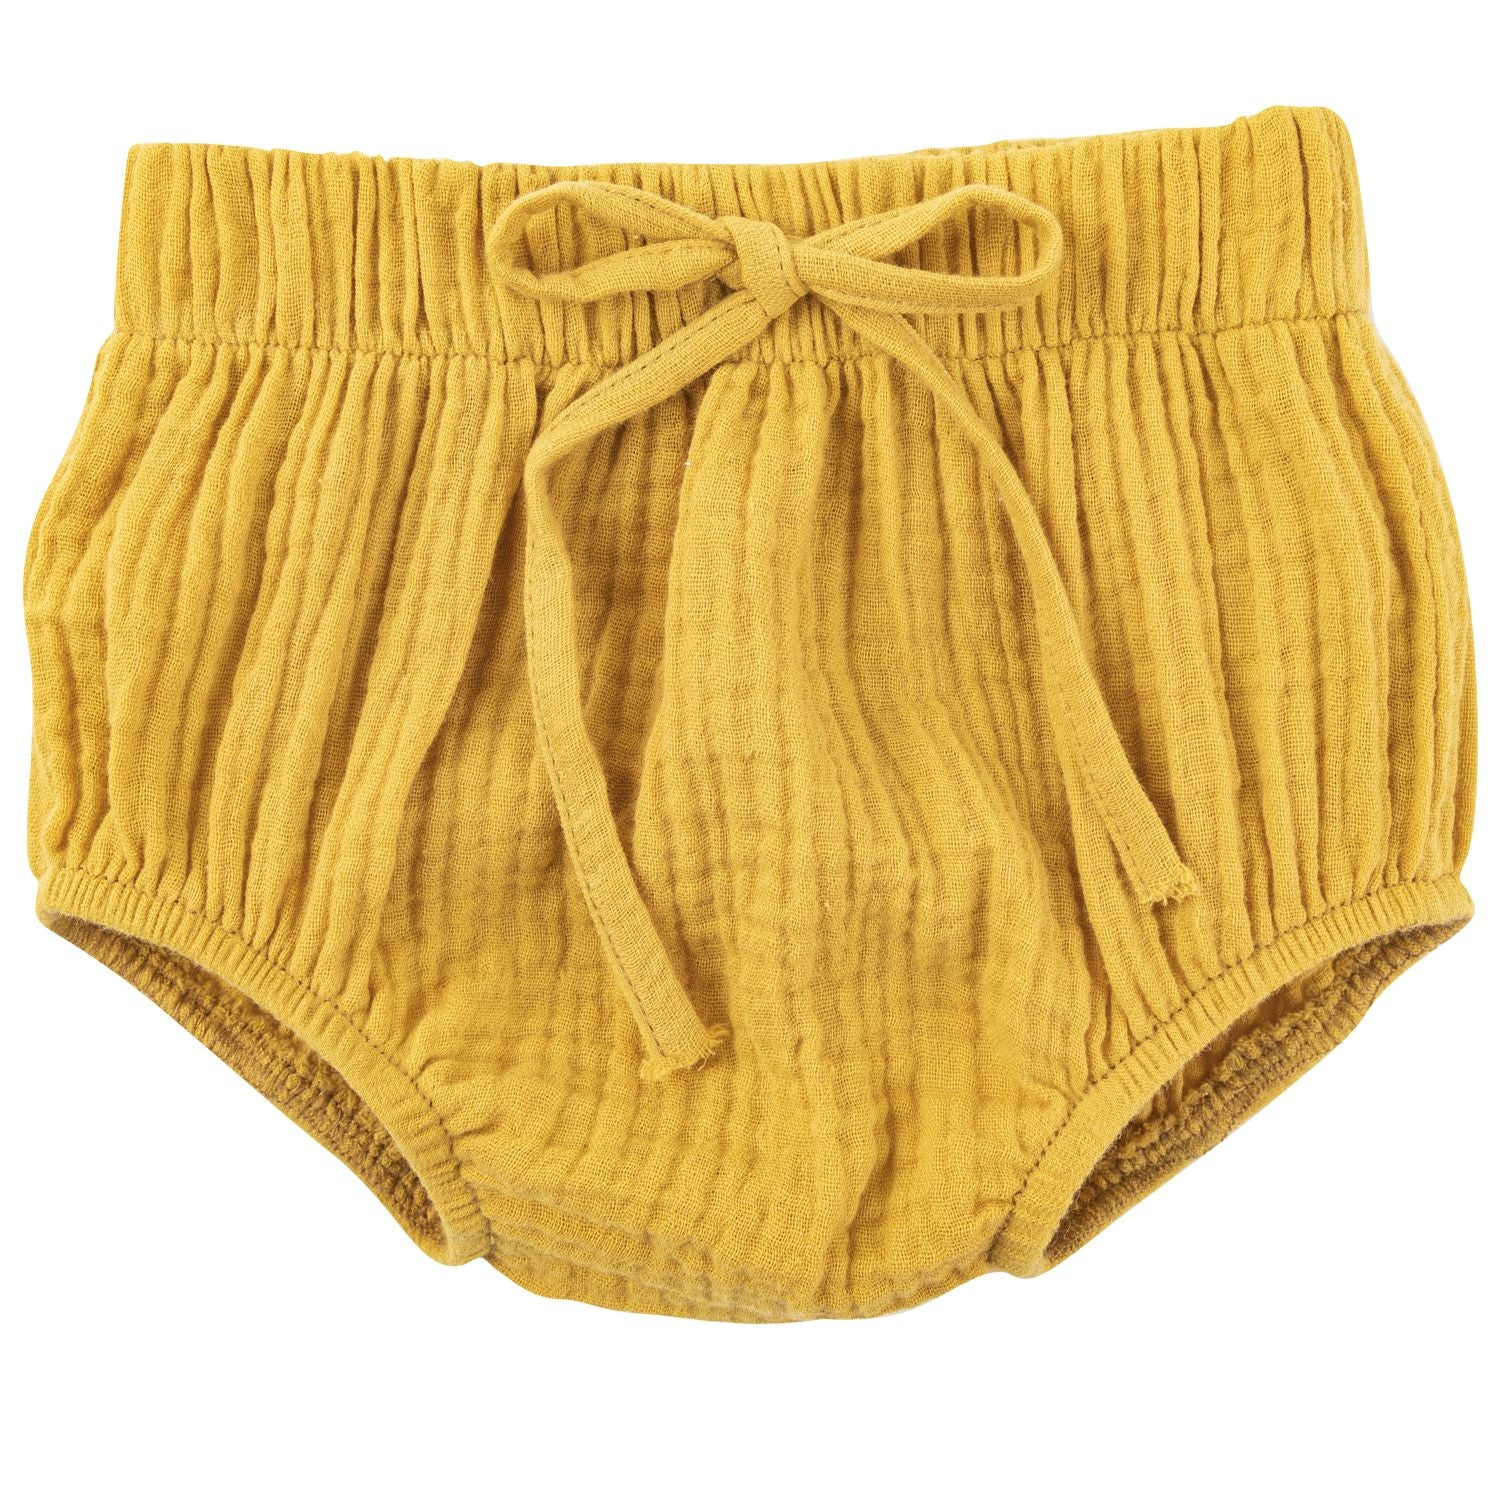 Muslin Cotton Bloomers - Sunflower